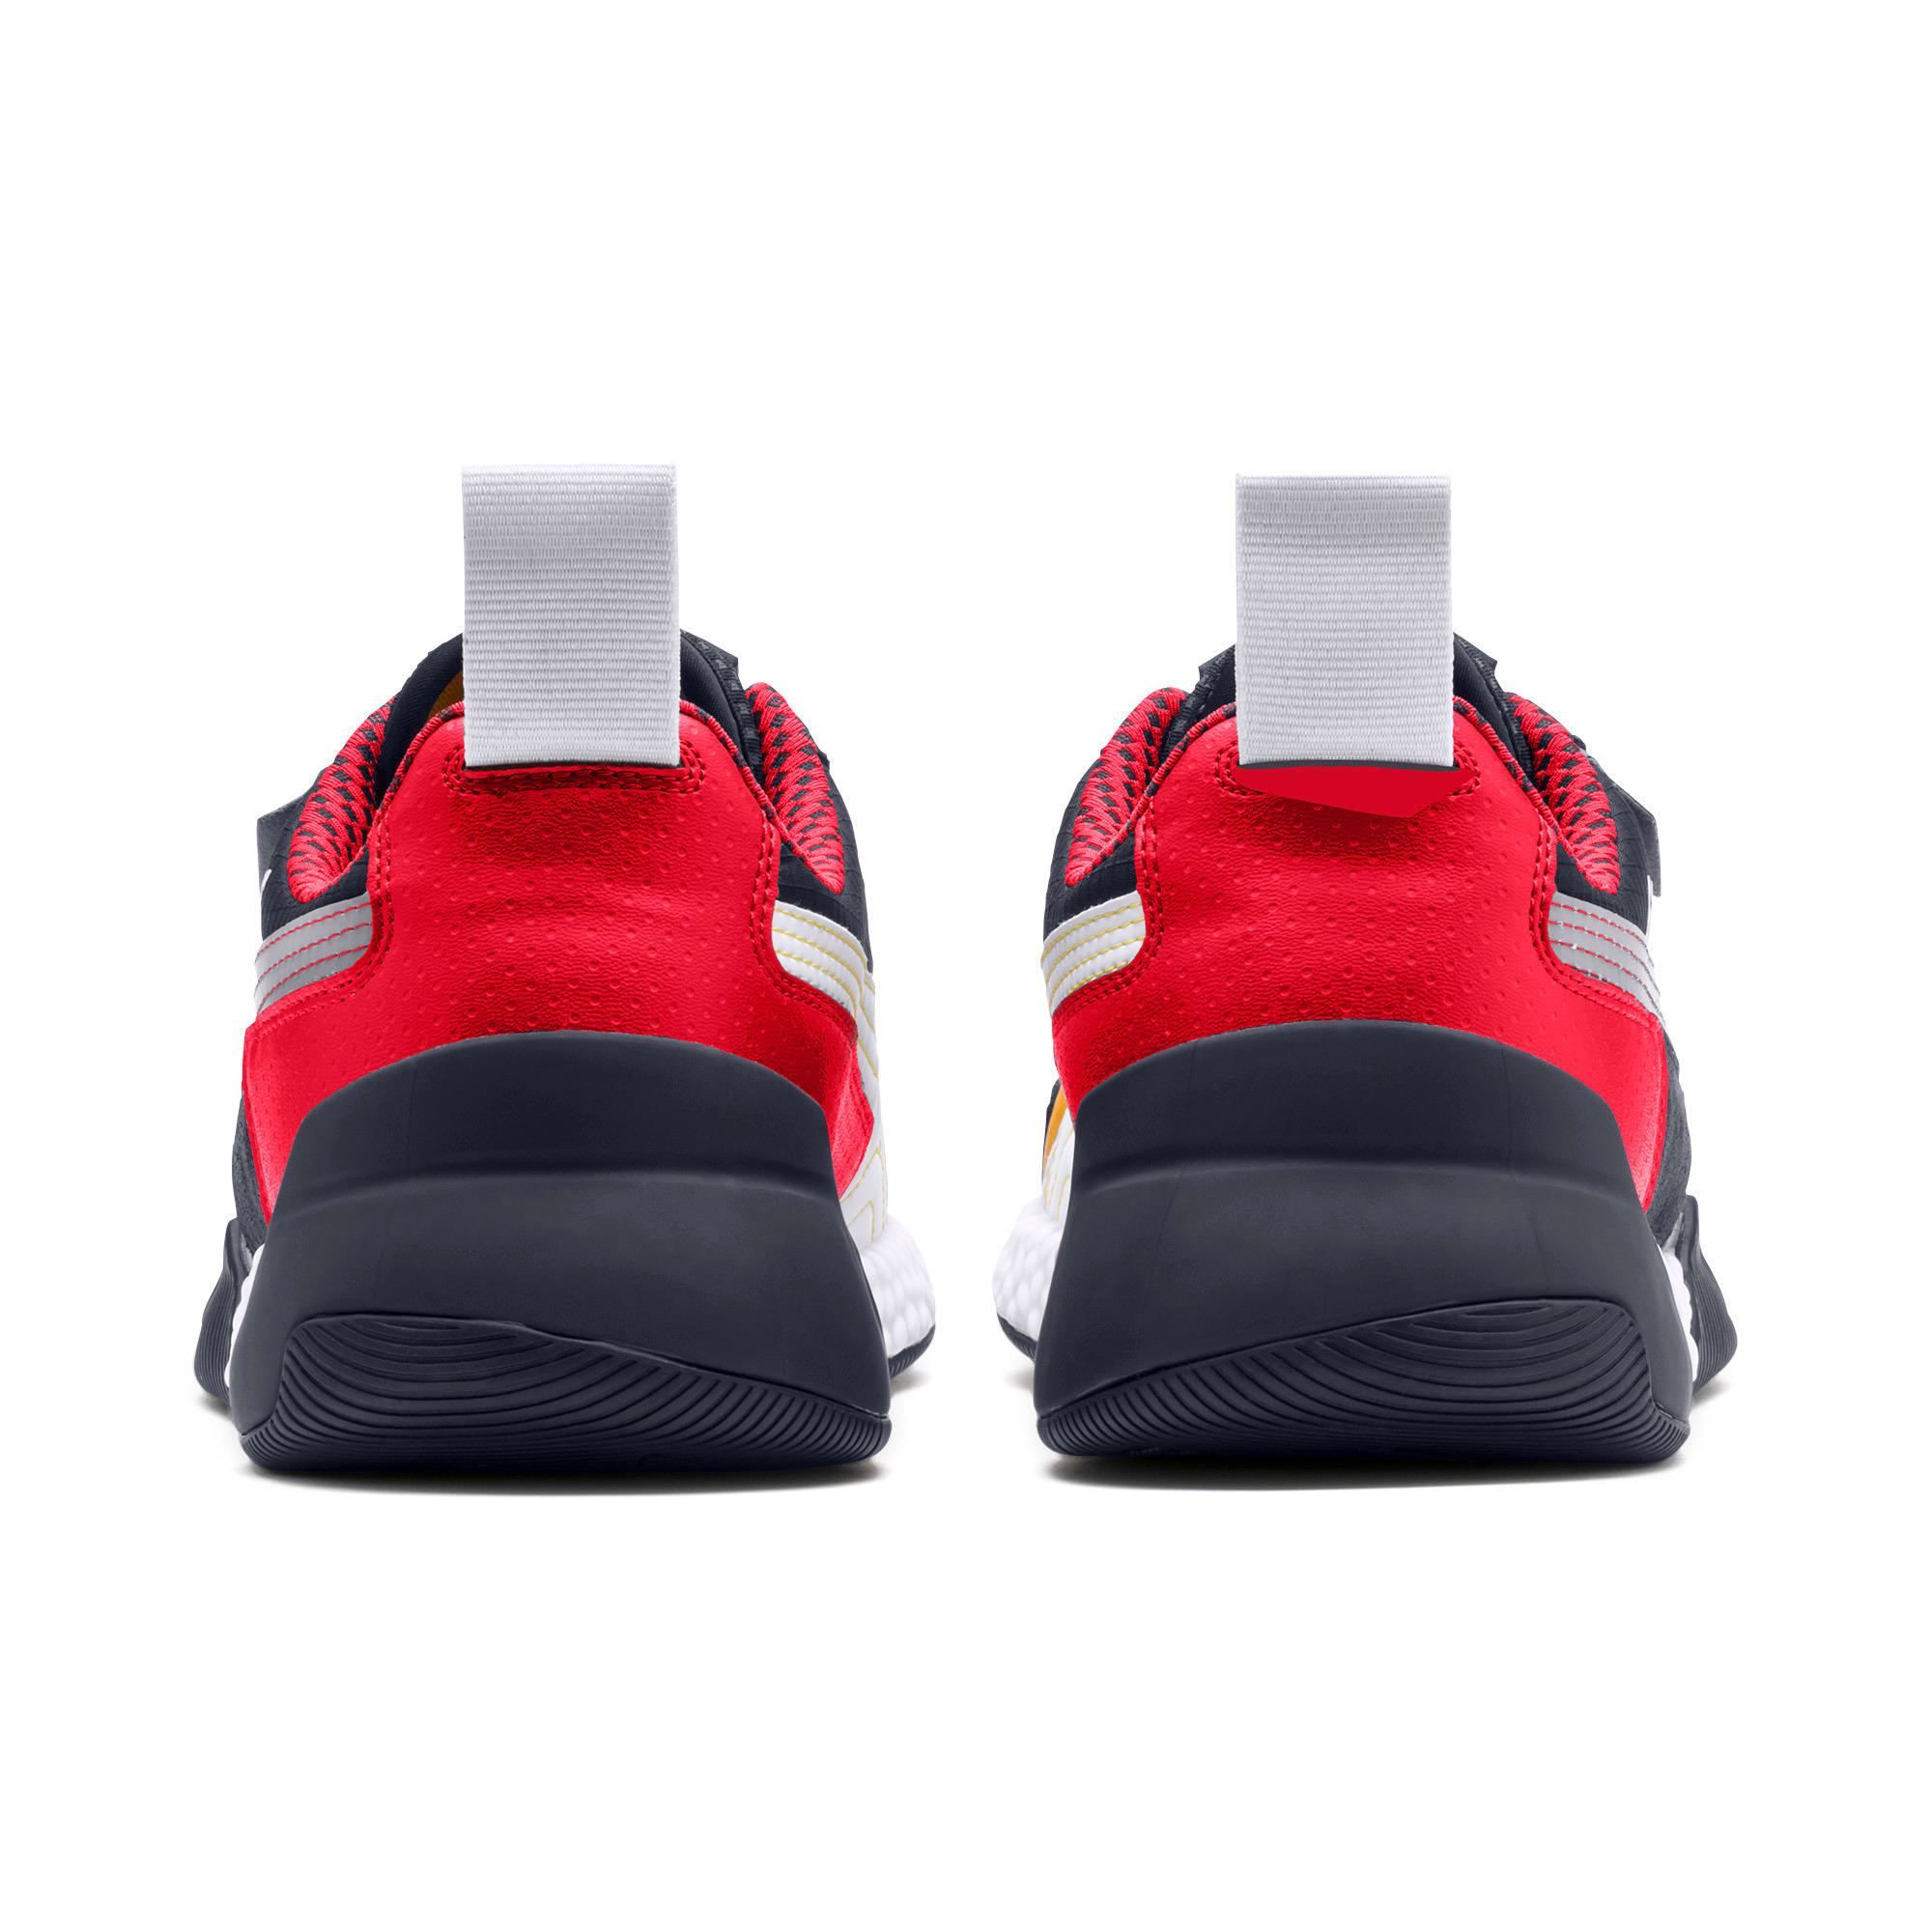 Thumbnail 5 of Red Bull Racing Speed HYBRID Men's Trainers, NIGHT SKY-White-Chinese Red, medium-IND